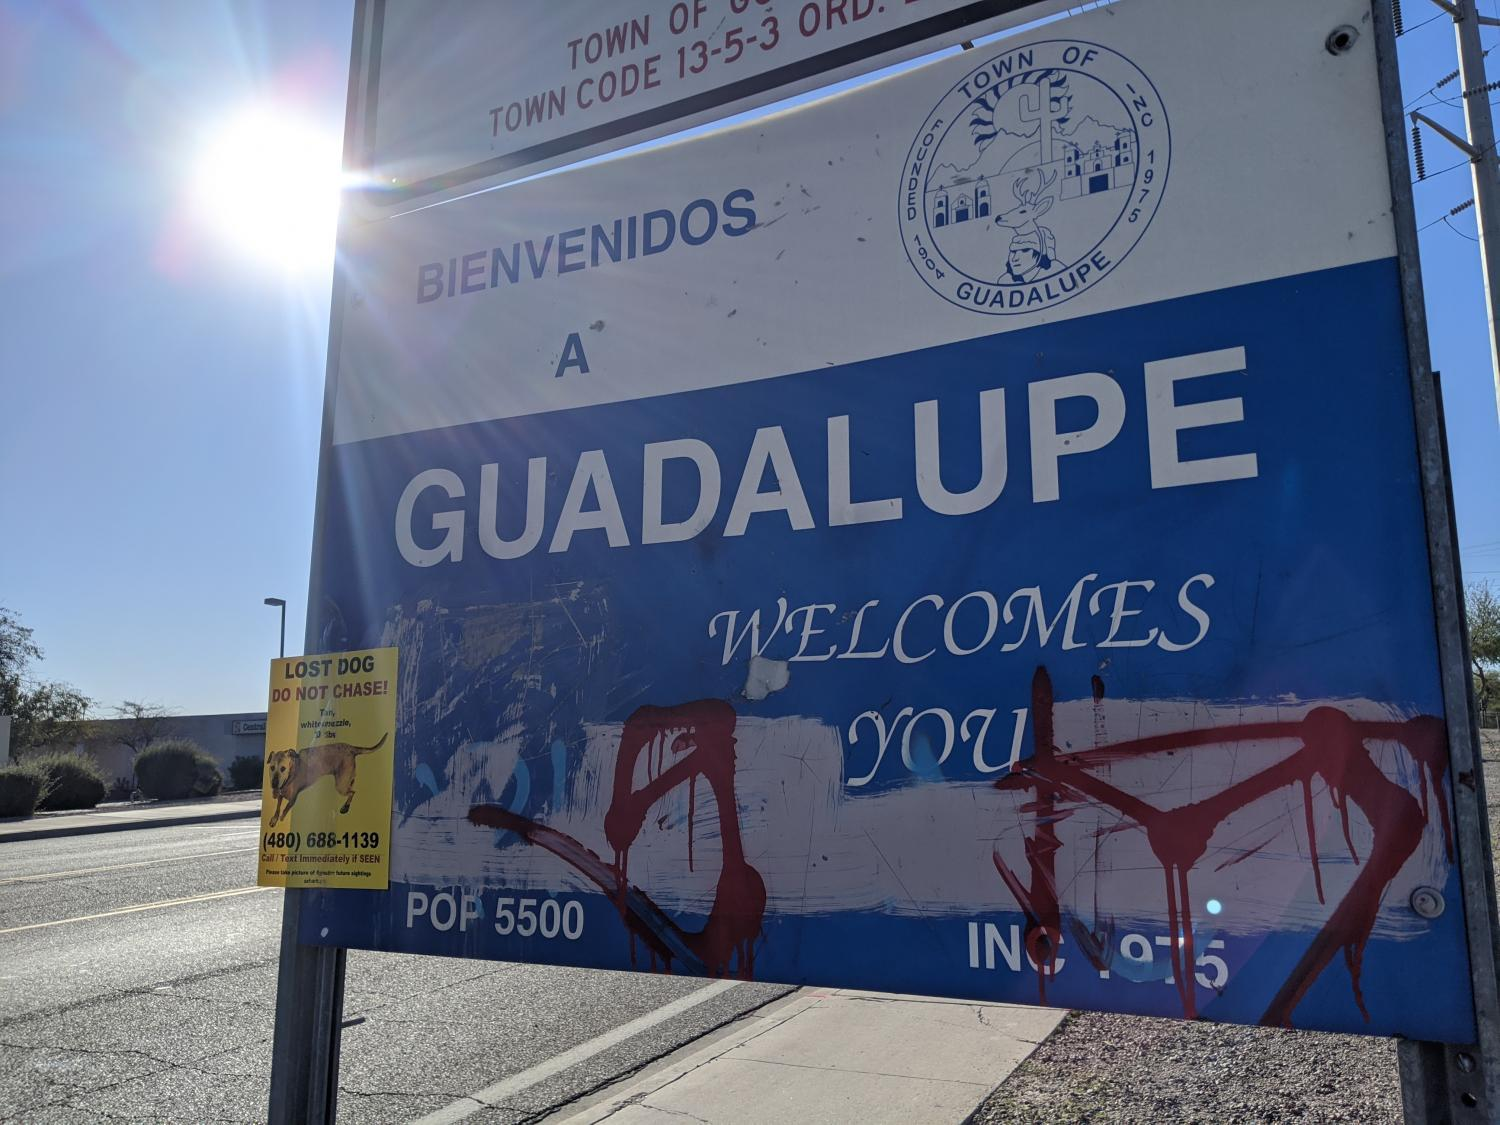 Guadalupe, Arizona sign